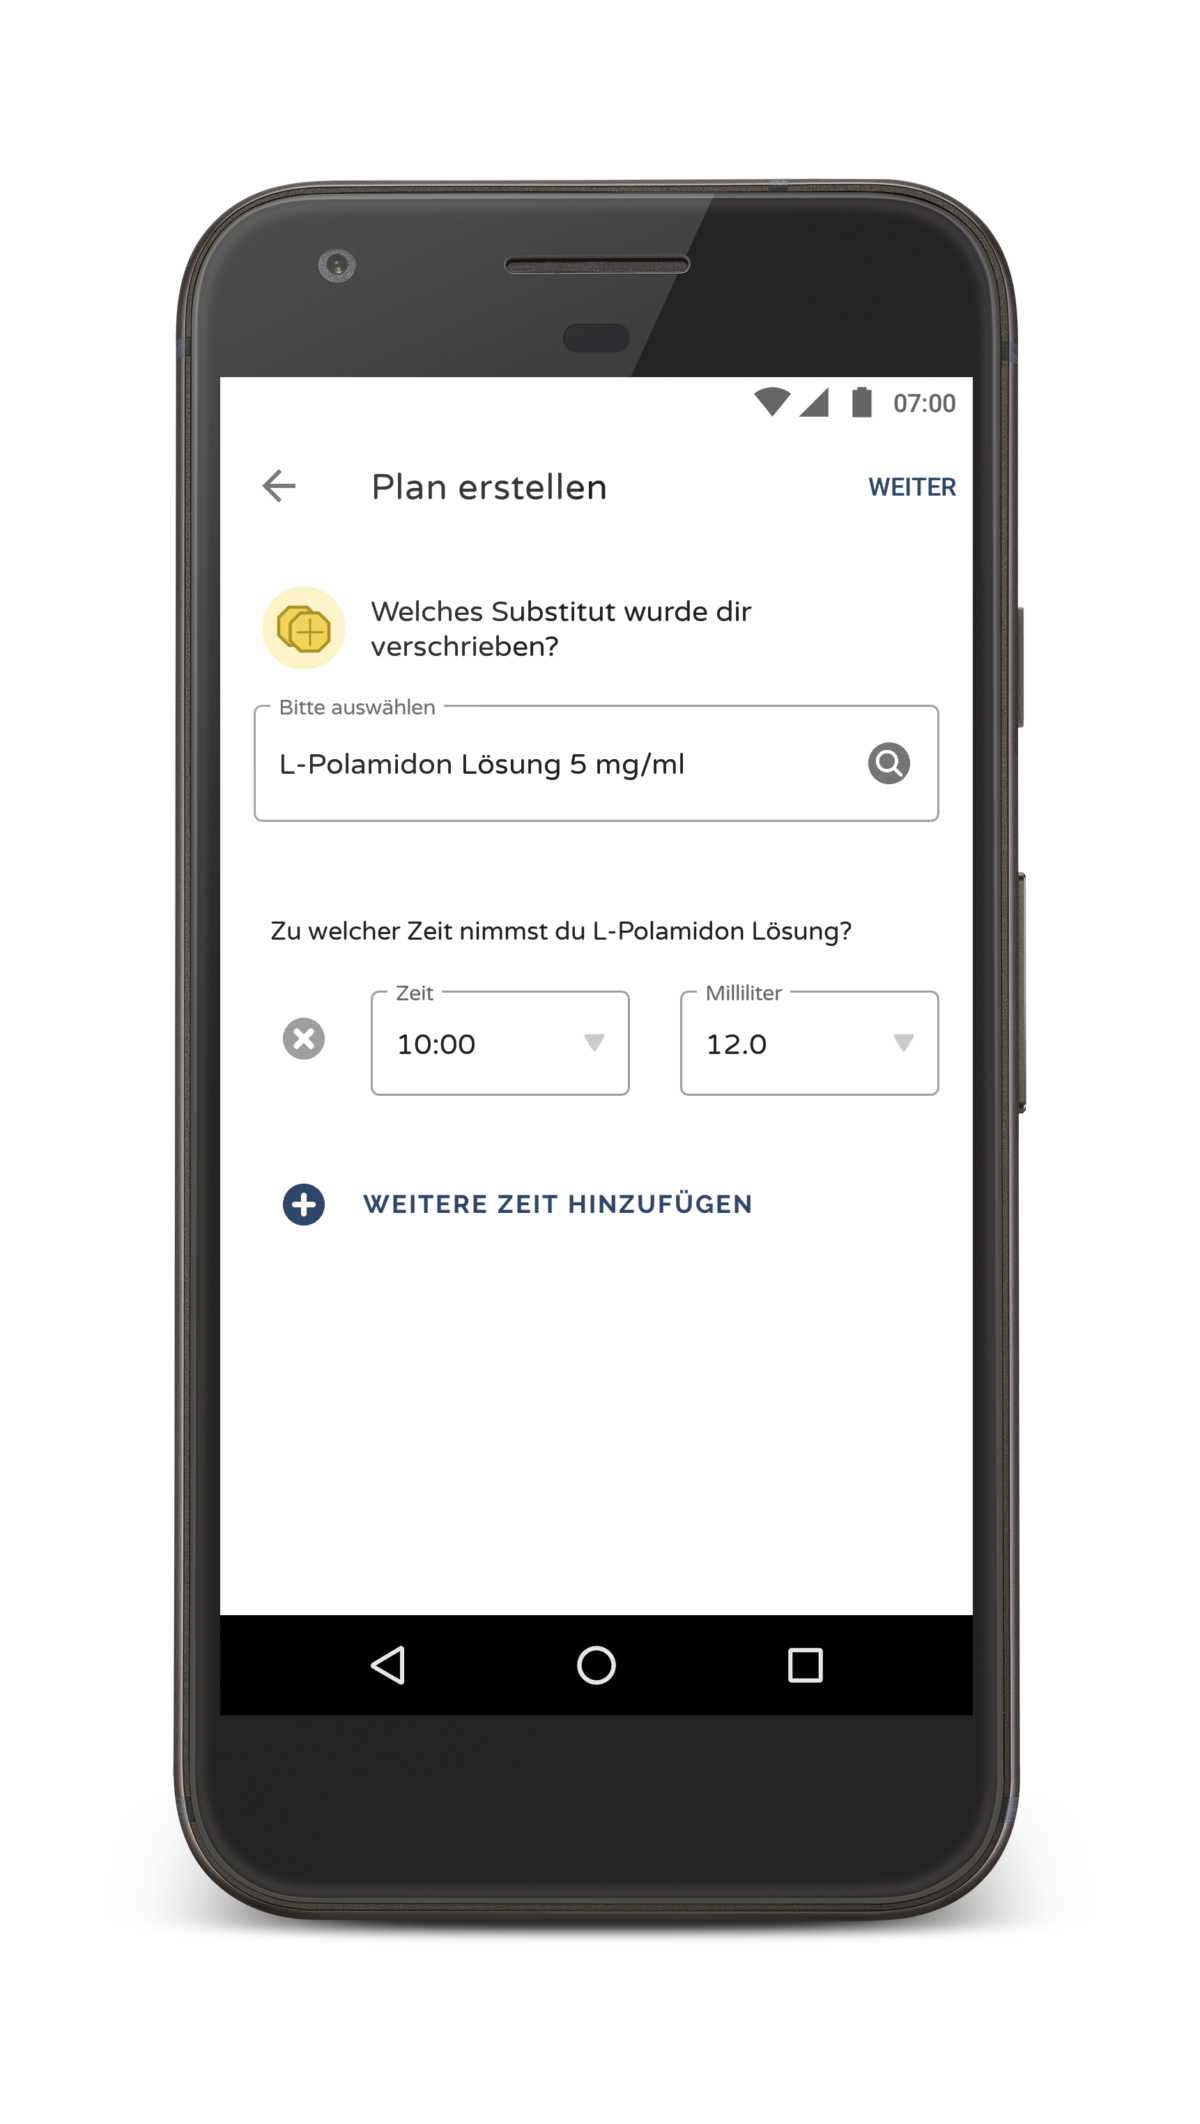 Screenshot: Substitutionsplan erstellen